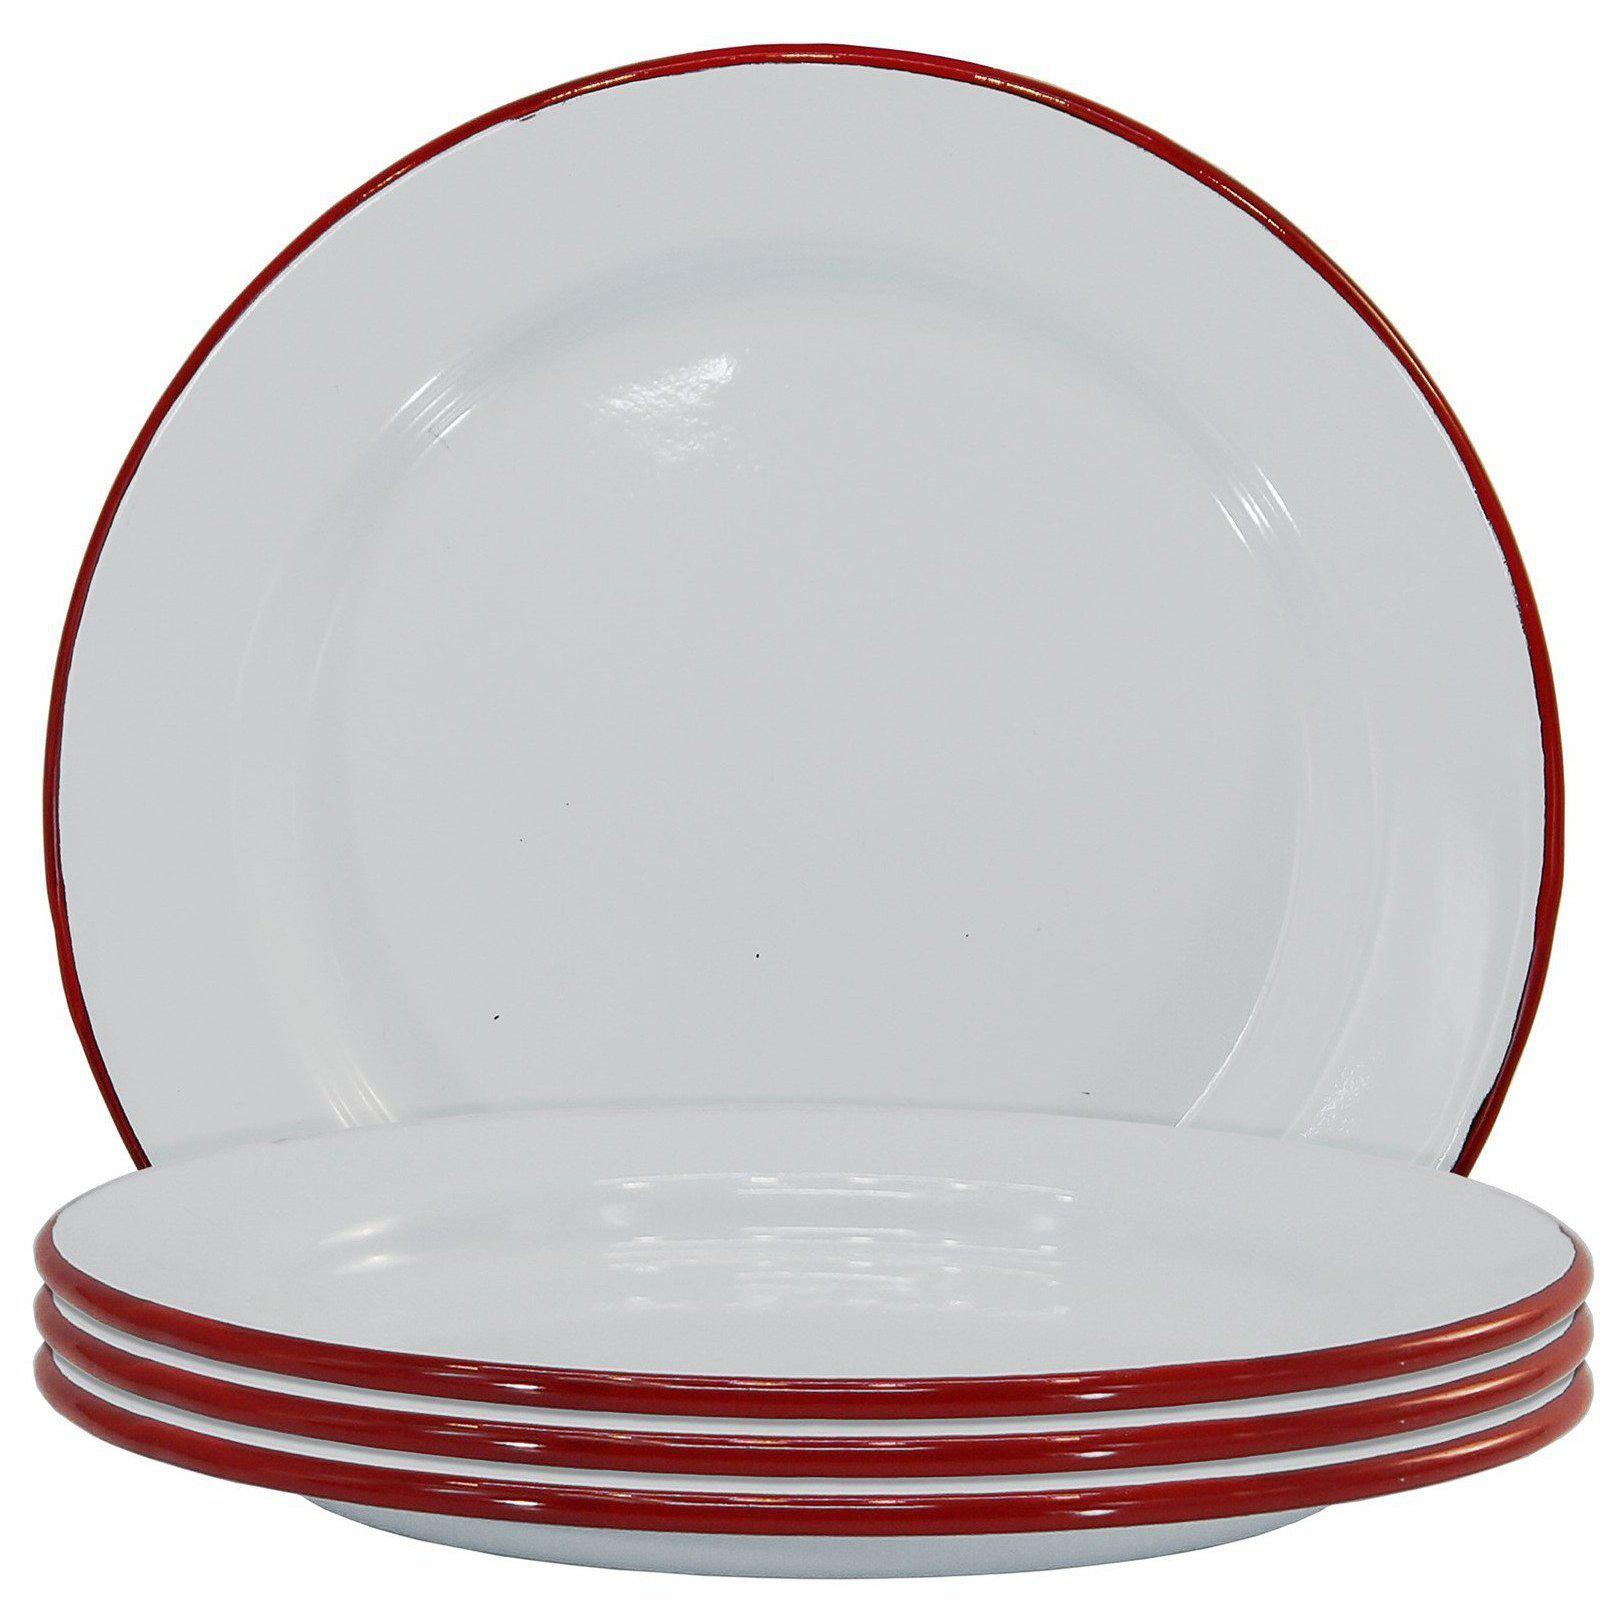 White Enamel With Red Trim Plate Set